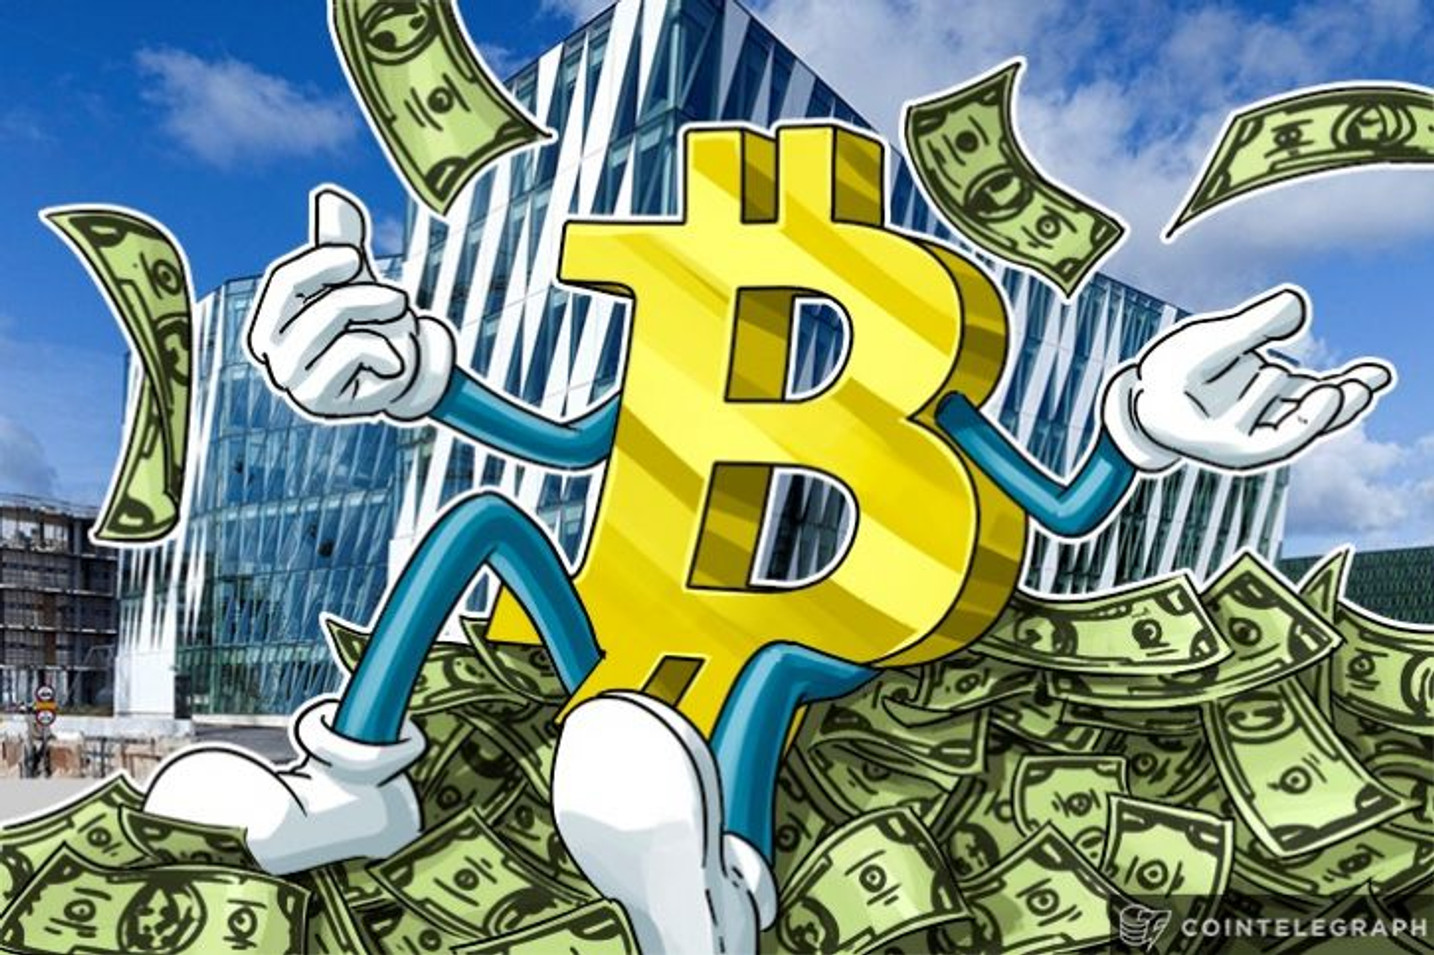 Bitcoin Market Cap Crosses $50 Billion Mark As BTC Price Surges